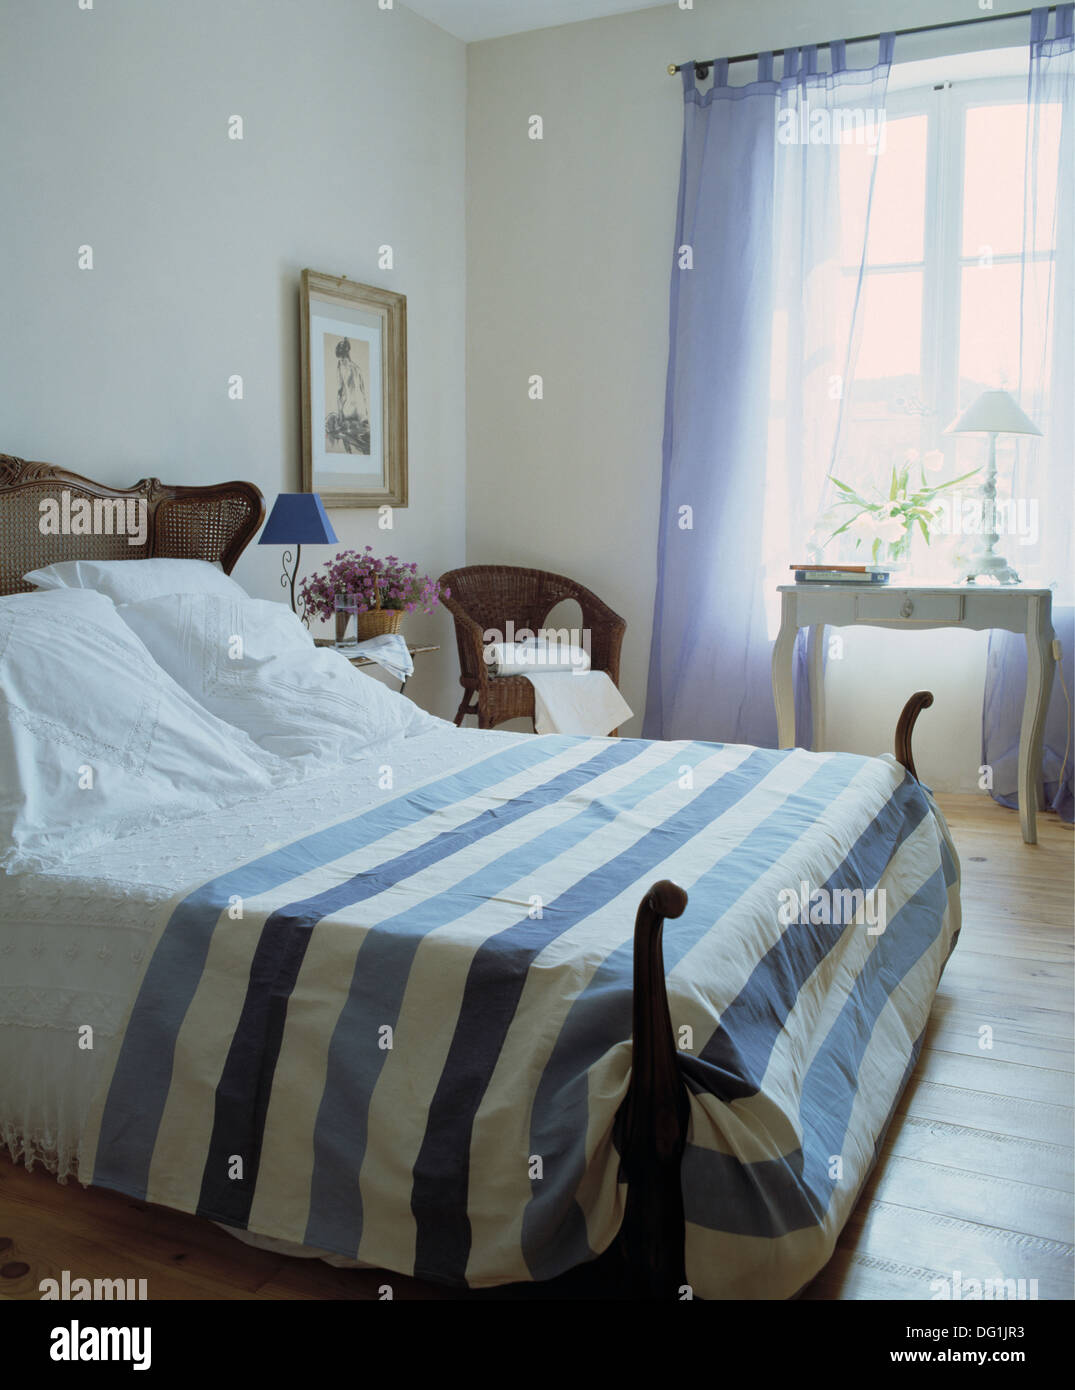 Blue+white striped bedspread and white pillows on antique ...